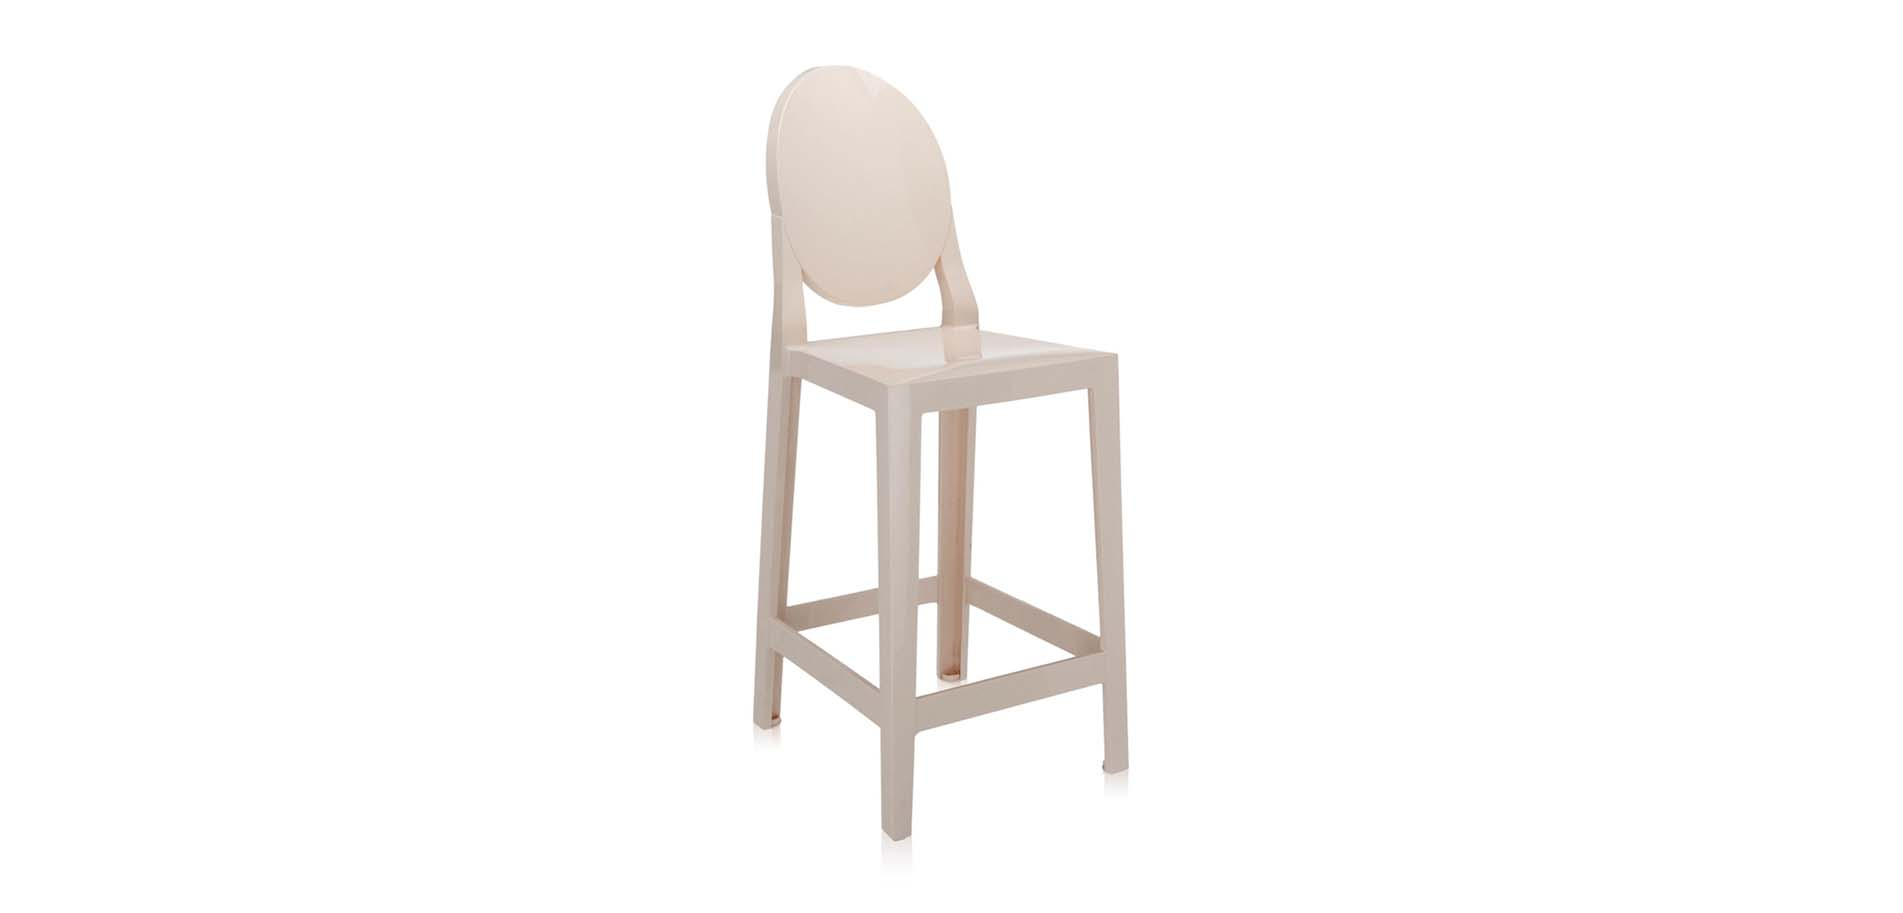 One More Bar Stool 100 Kartell Έ ό